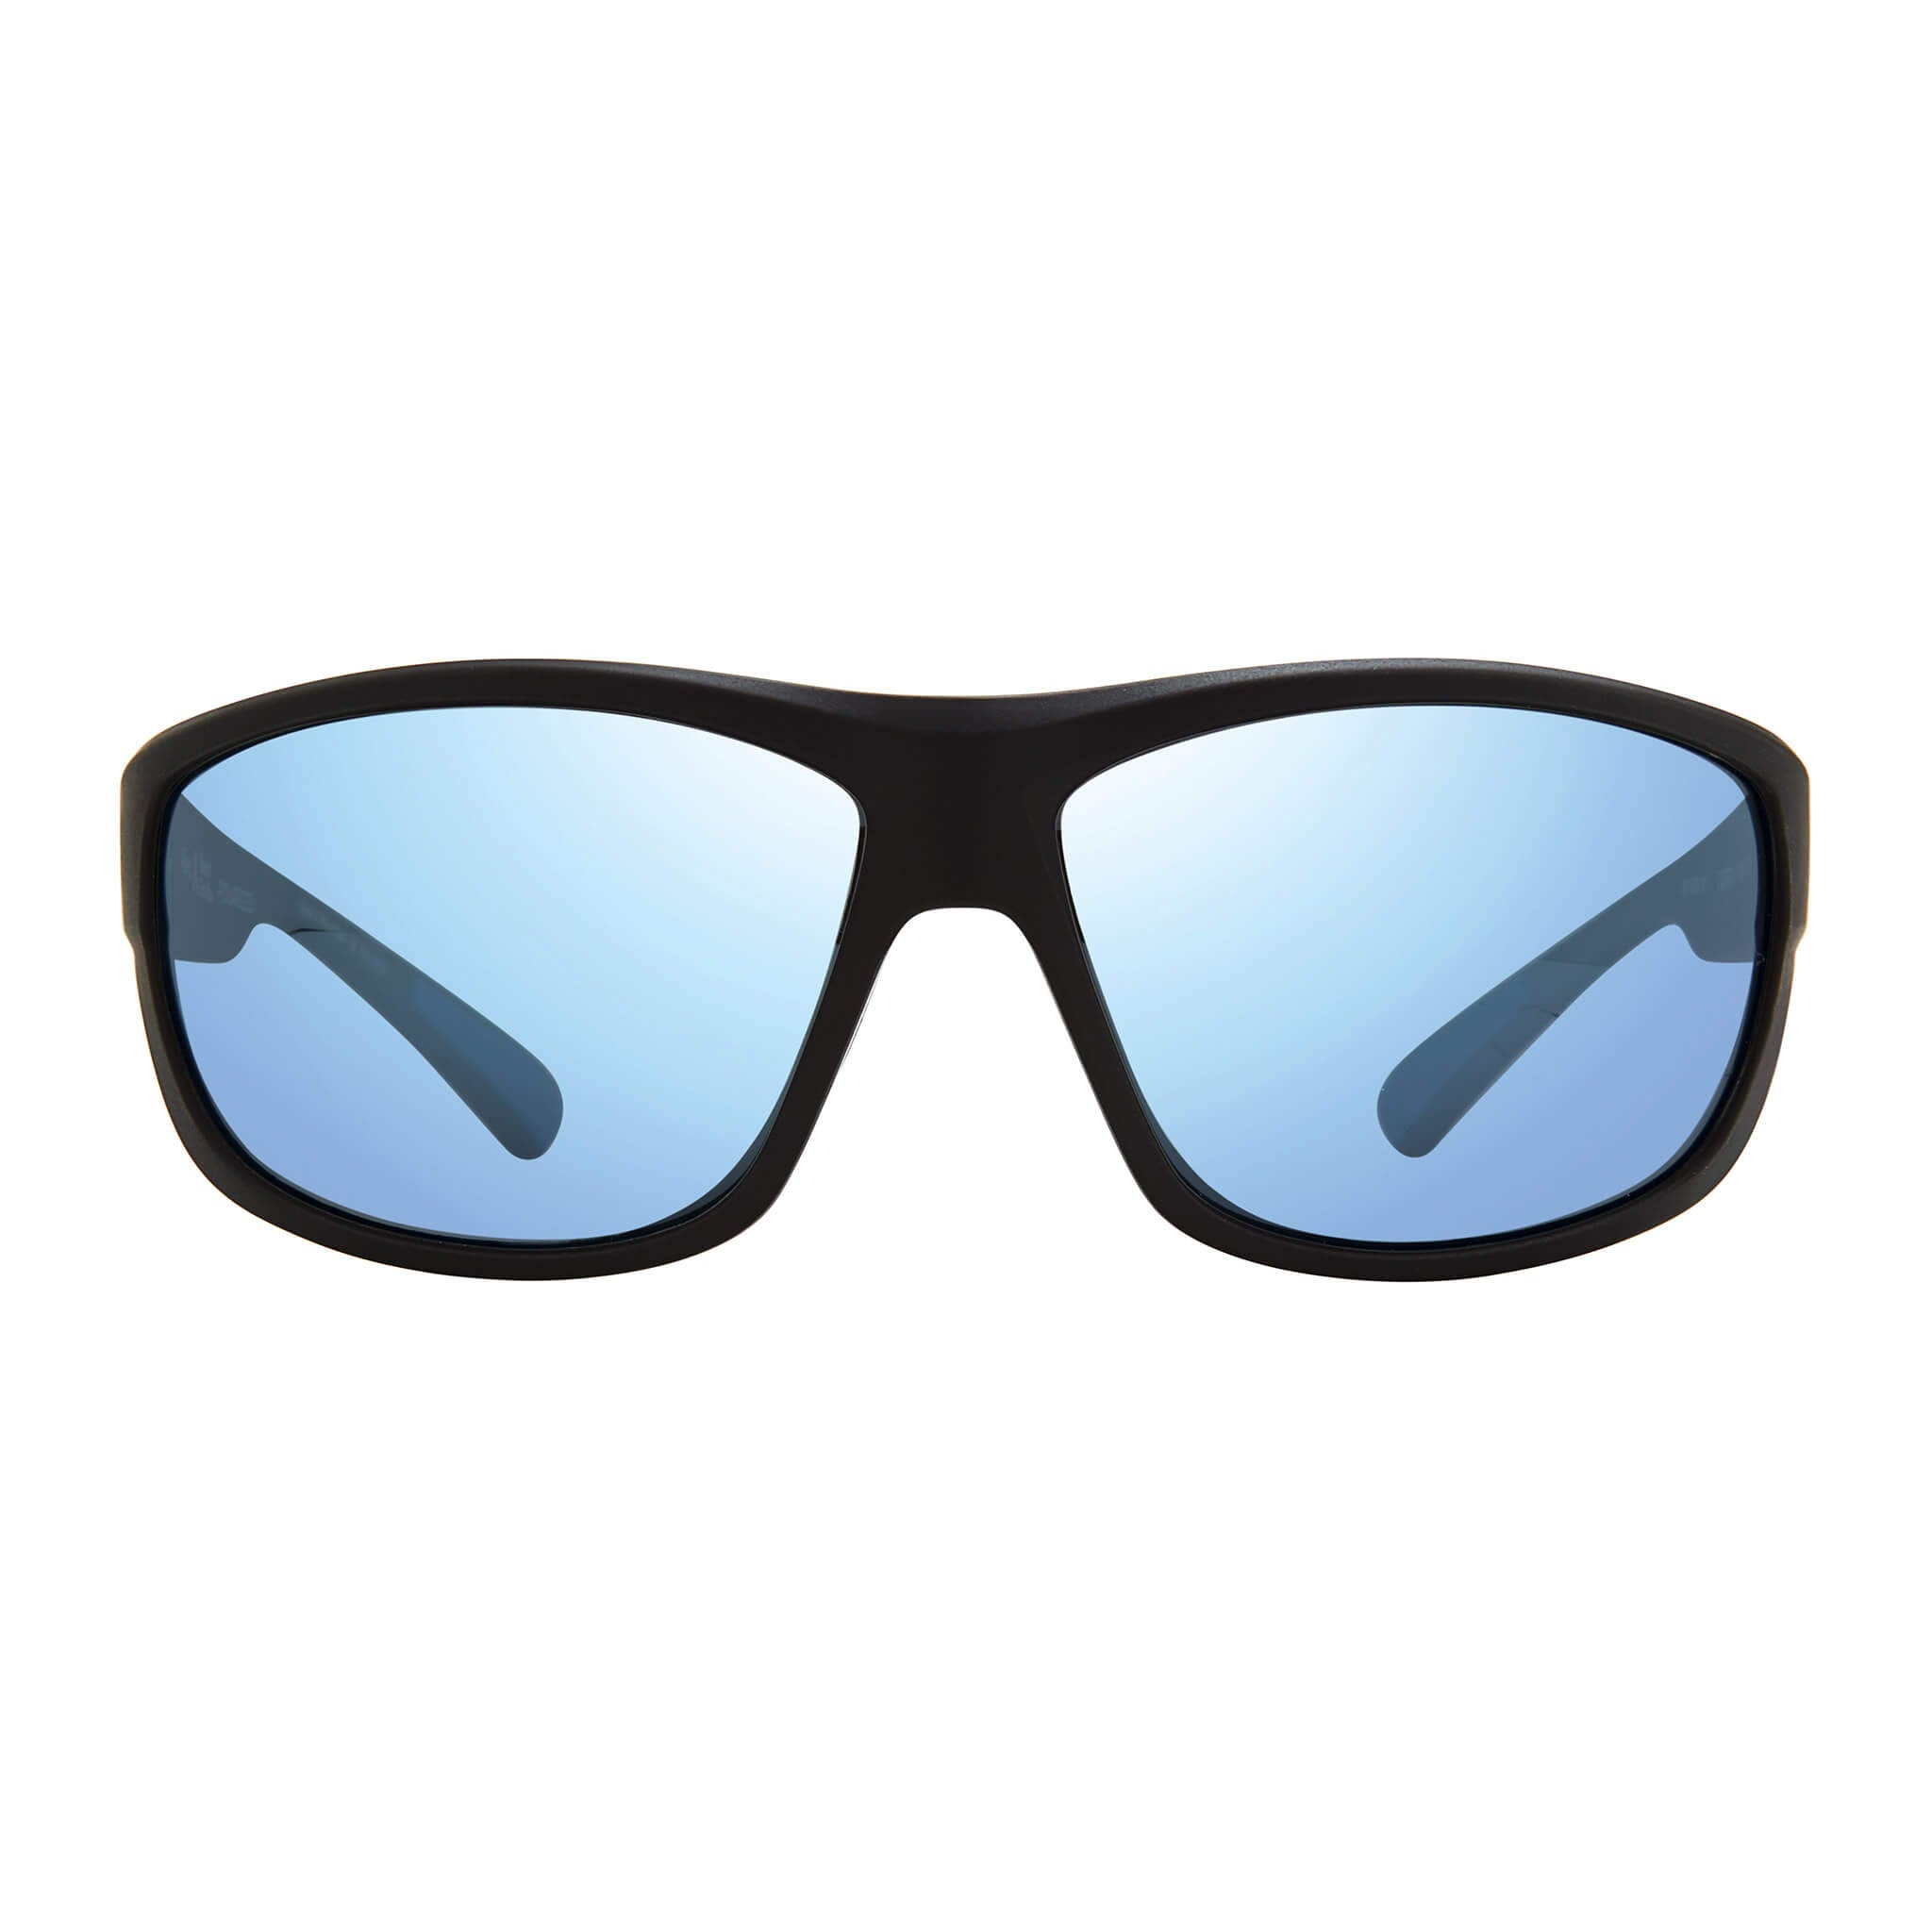 Matte black + blue water lens:Front view of Bear Grylls Revo Caper Sunglasses